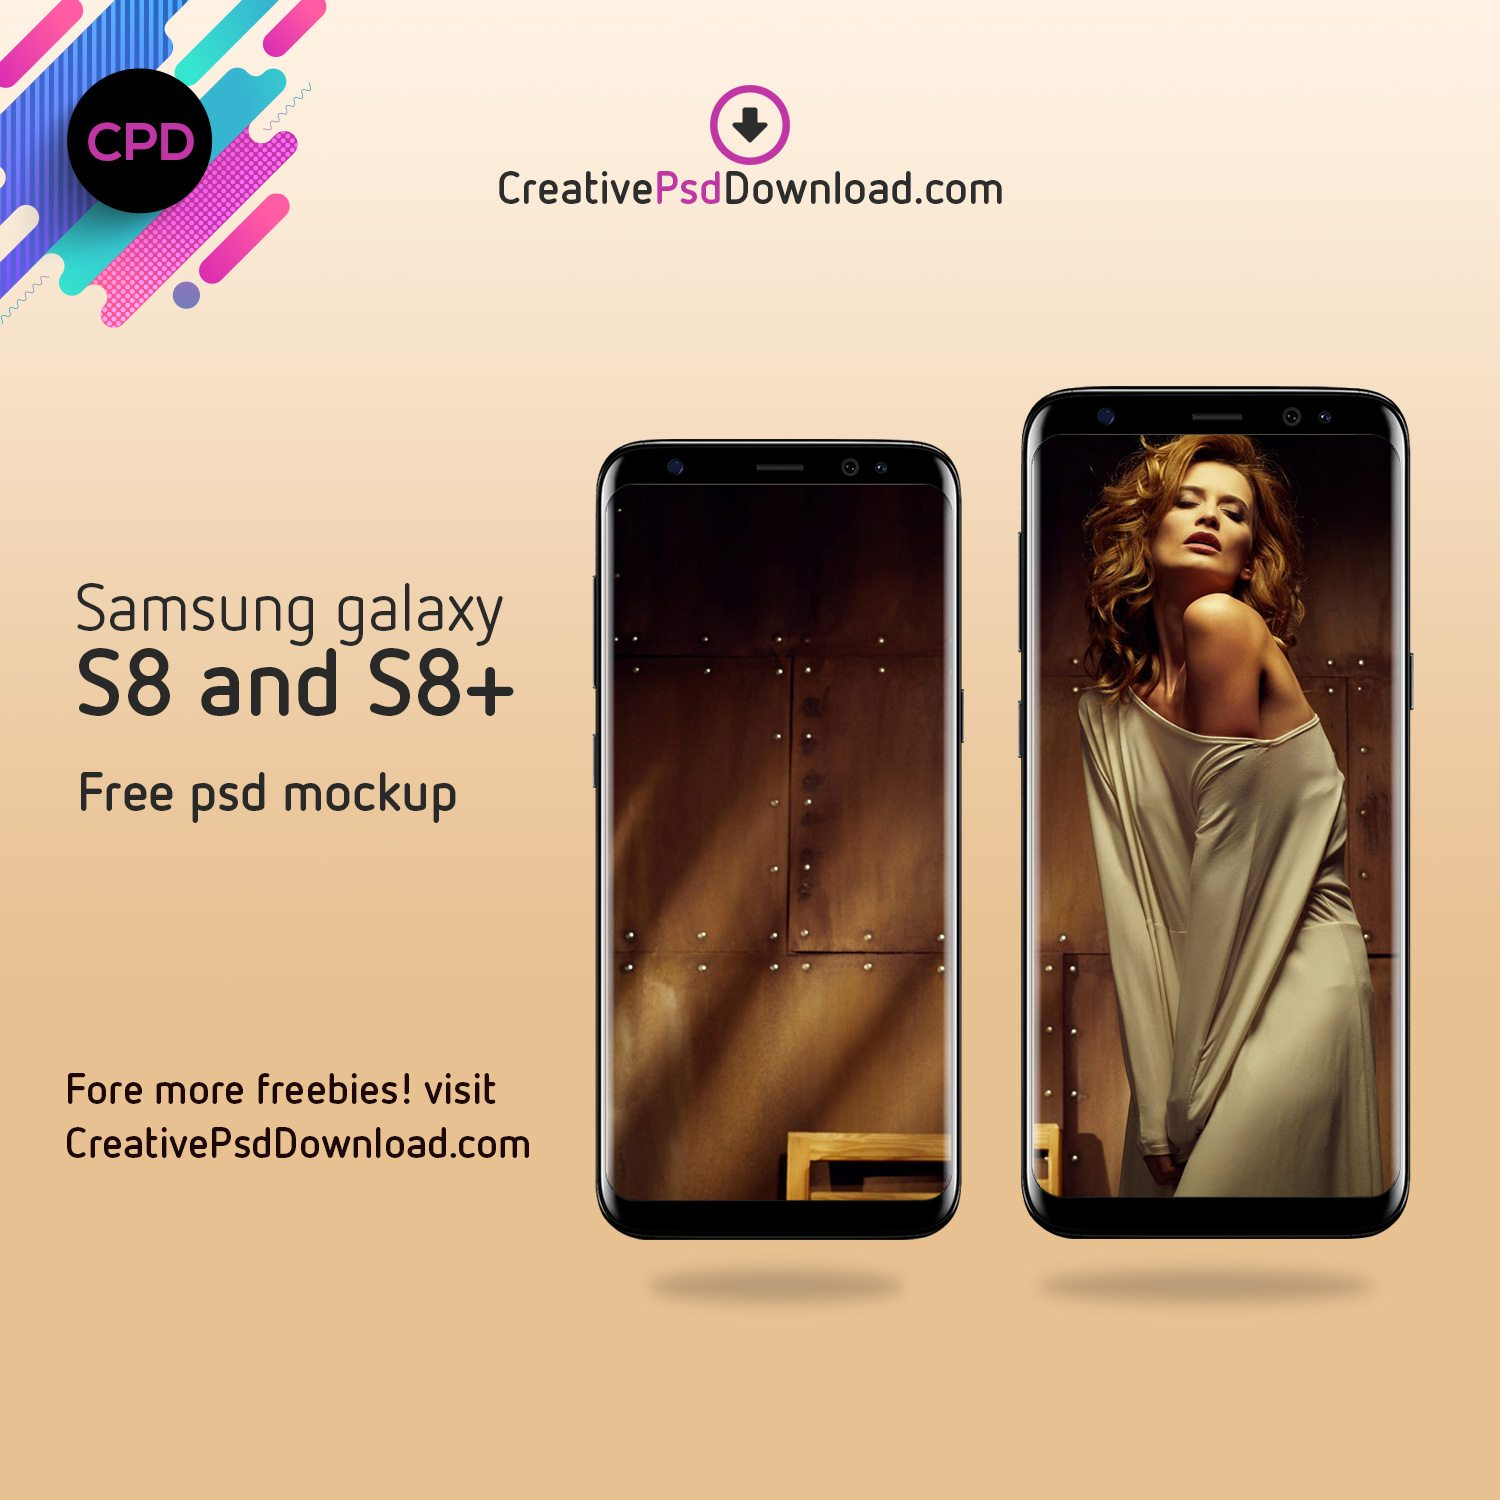 Samsung Galaxy S8 And S8+ Free Psd Mockup Thumbnail